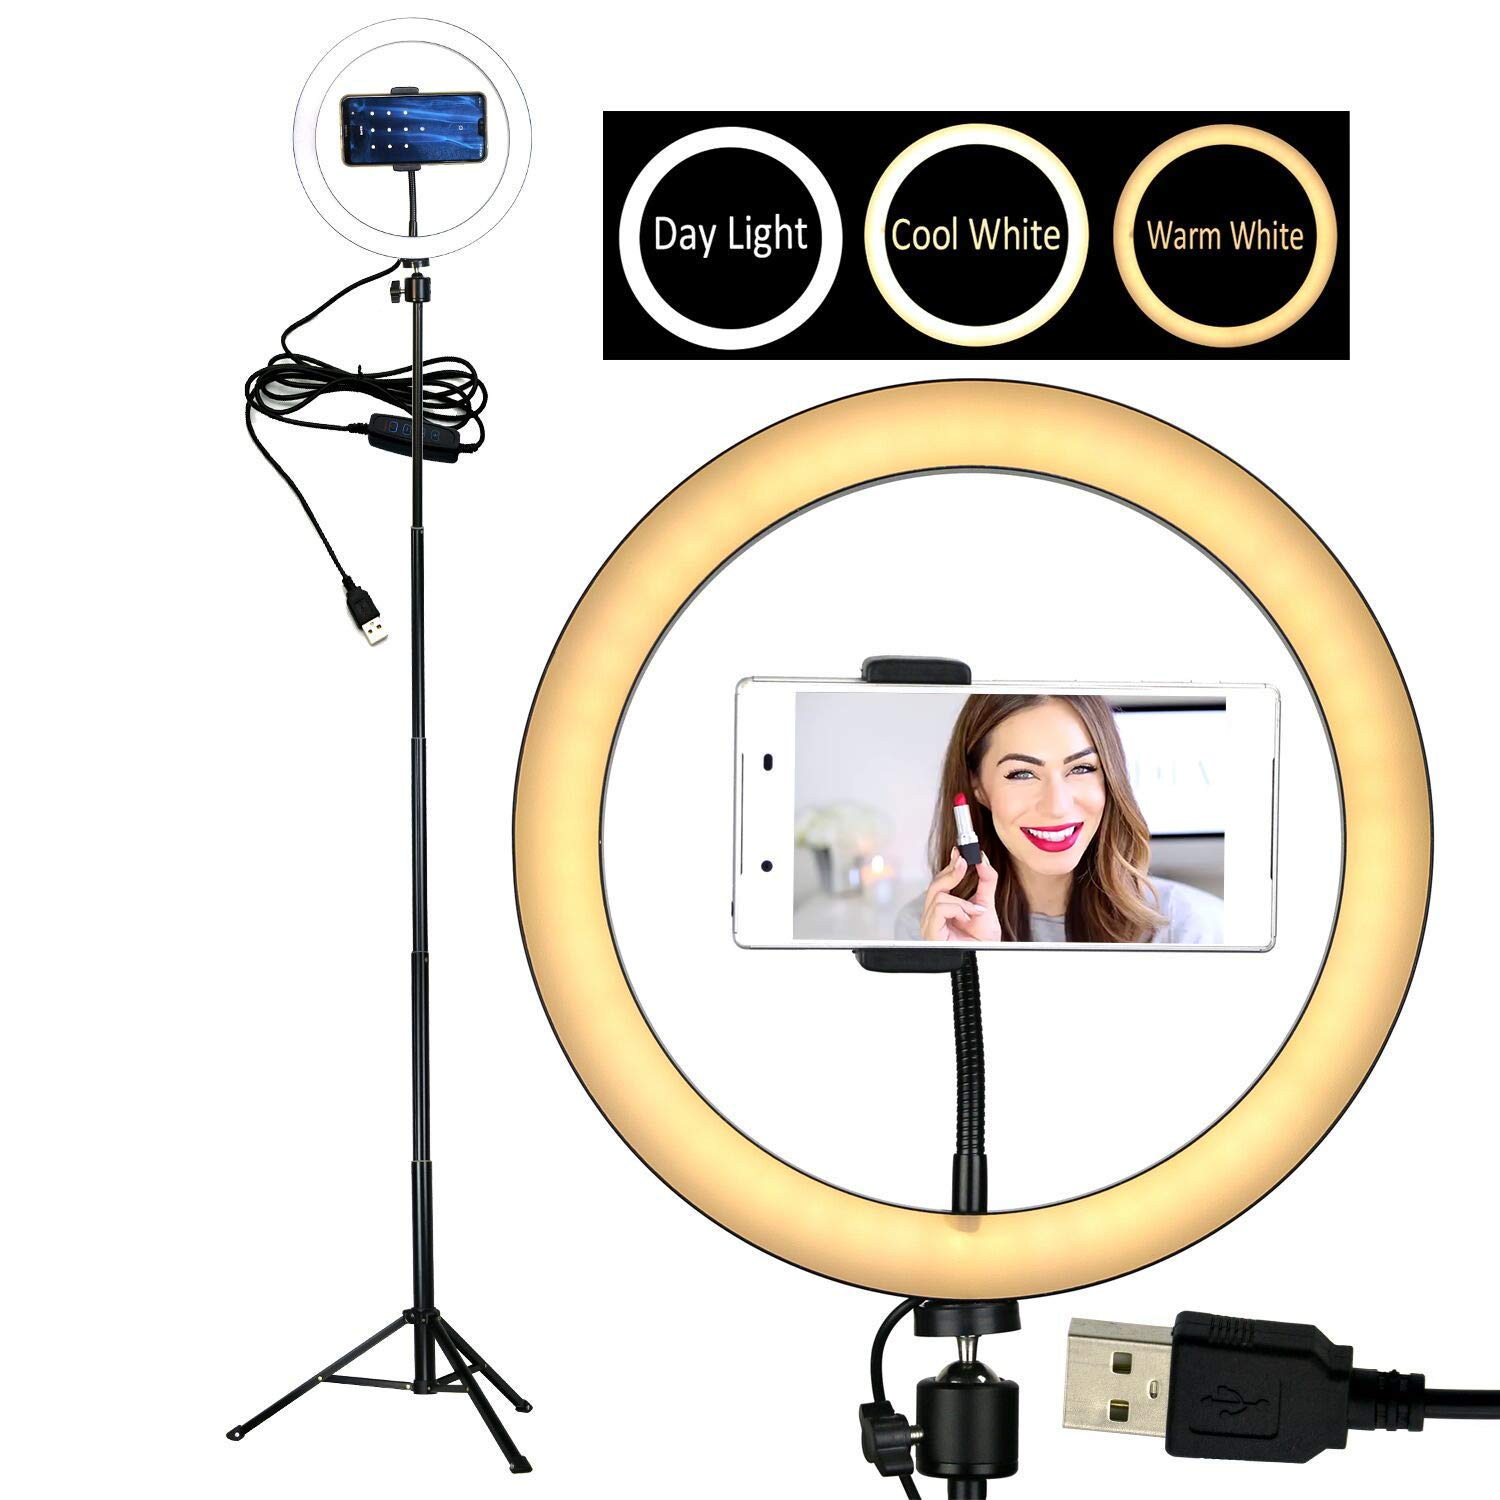 10'' Selfie Ring Light with Tripod Stand &Cell Phone Holder Desktop Lamp Mini Led Camera Light for YouTube Video and Live Makeup/Photography by Coospider